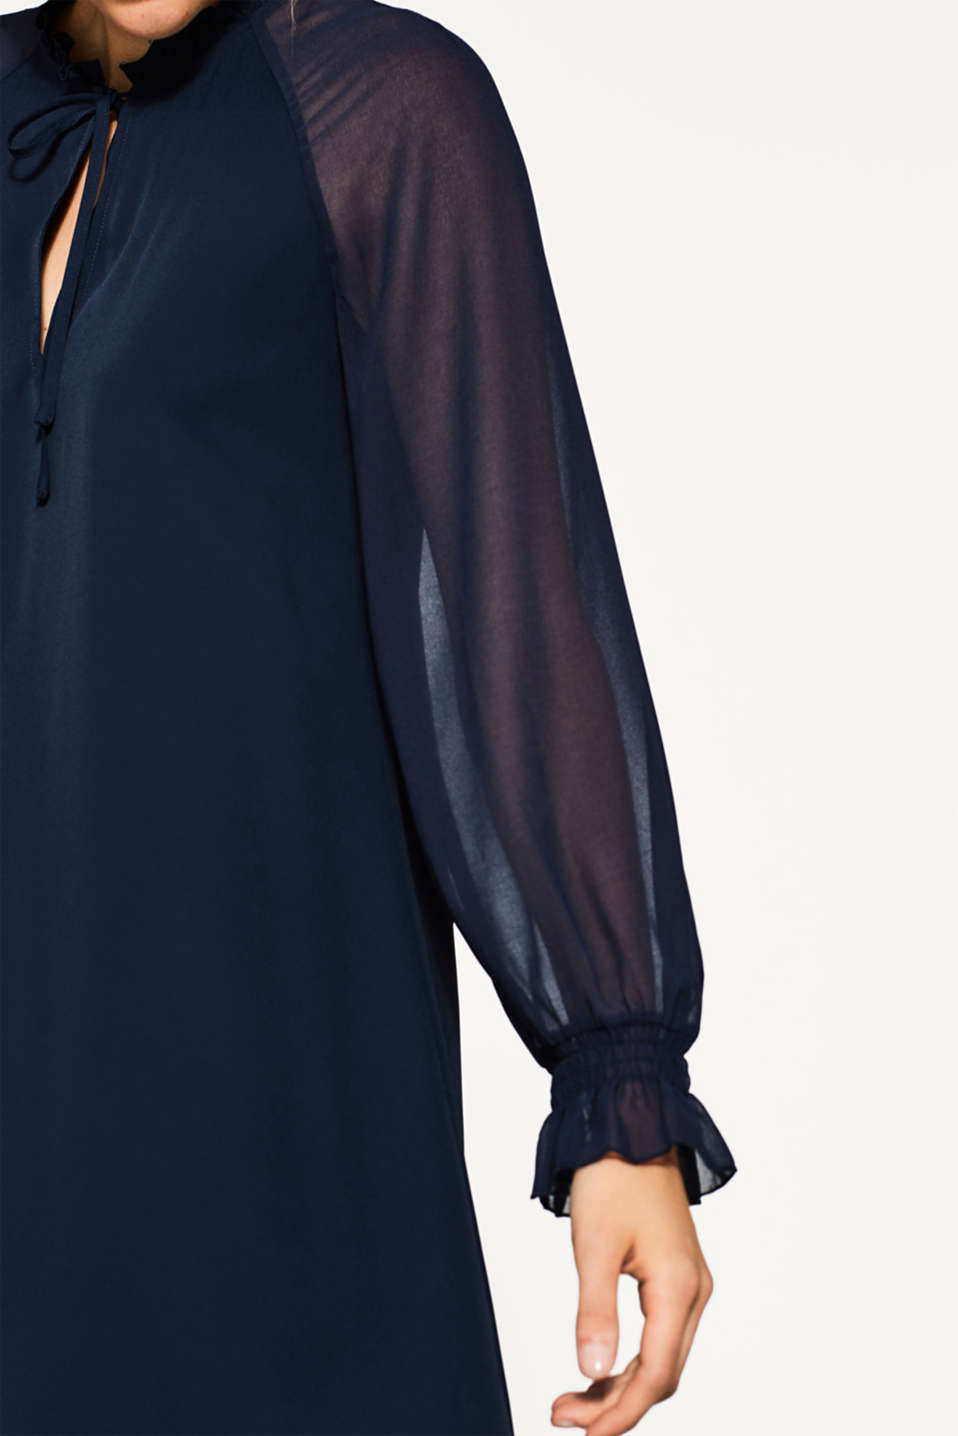 Esprit - Crêpe dress in a flowing A-line